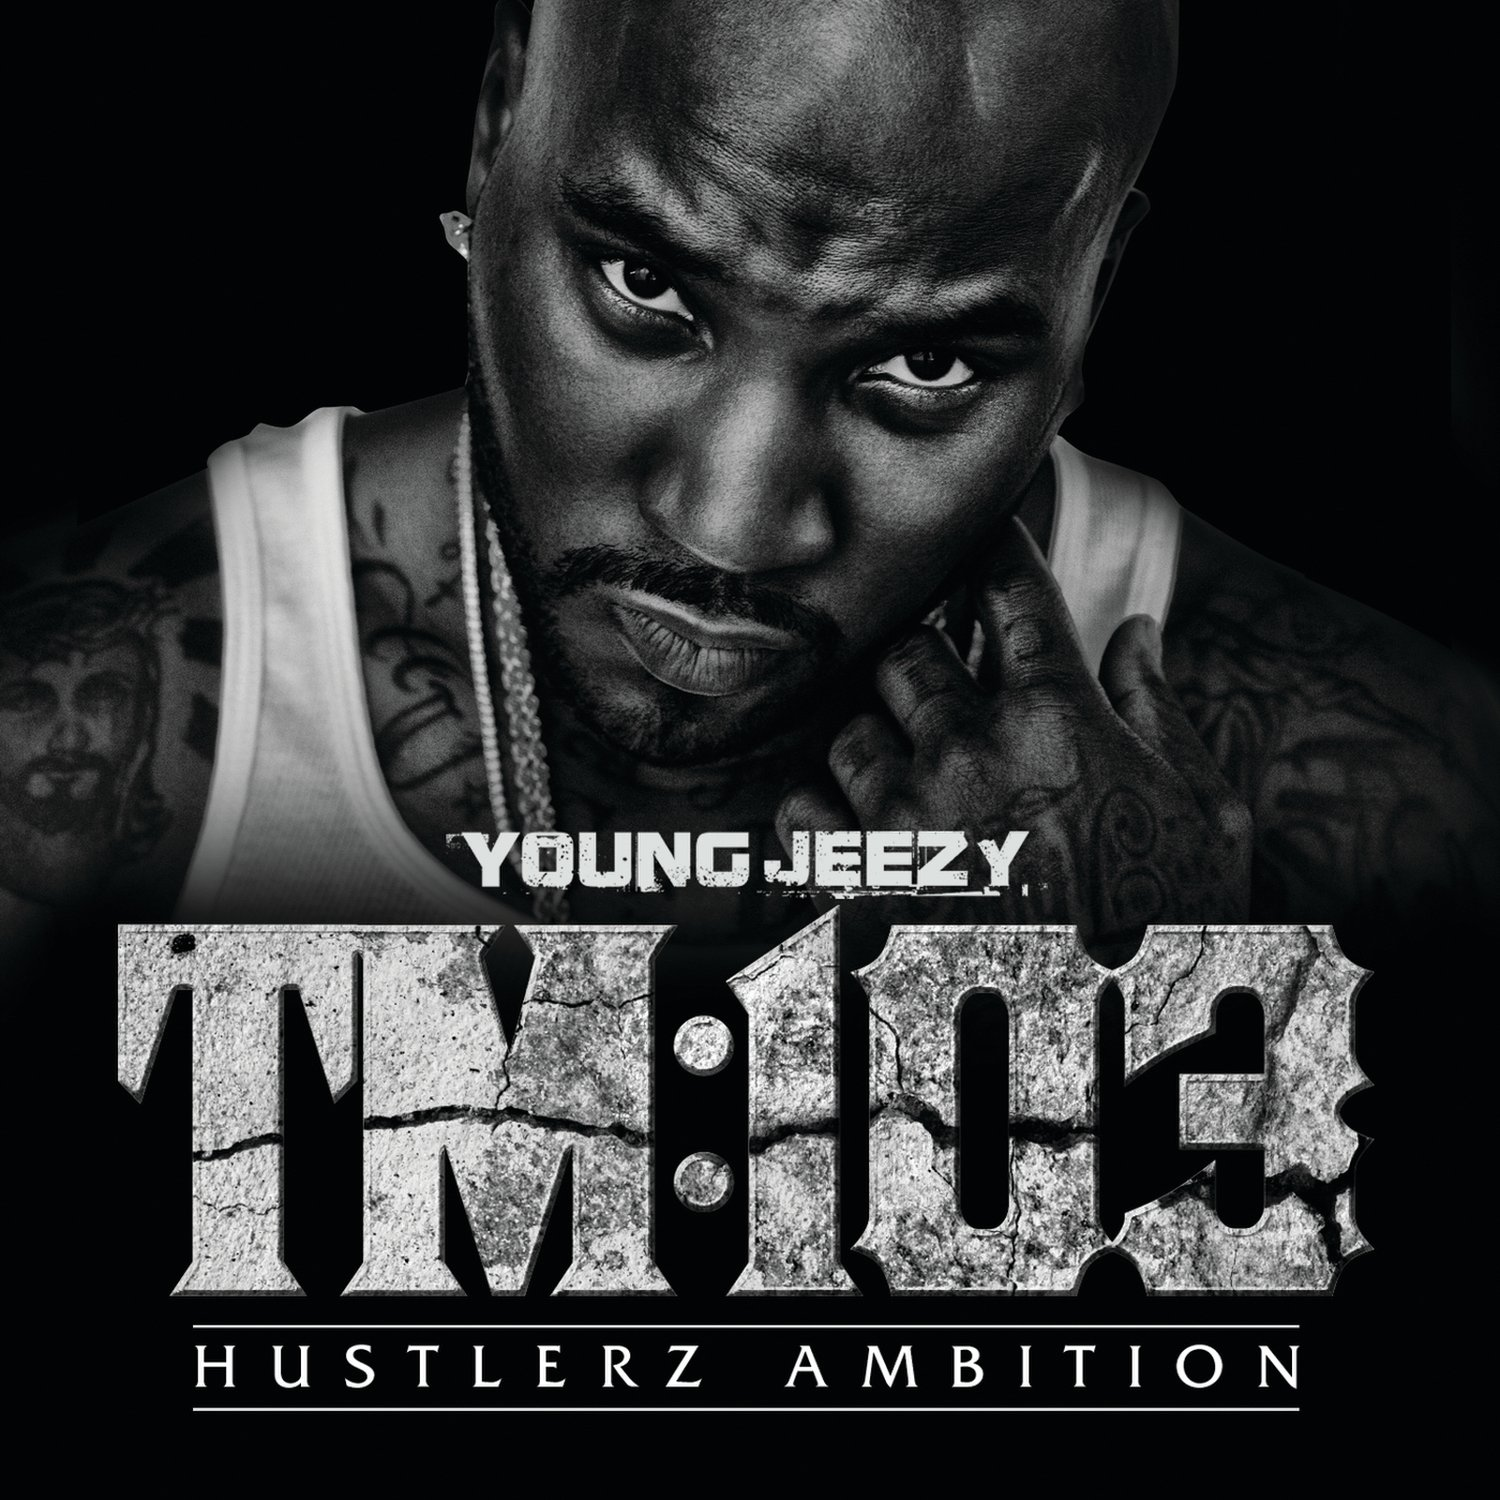 Young Jeezy, TM:103 - Hustlerz Ambition